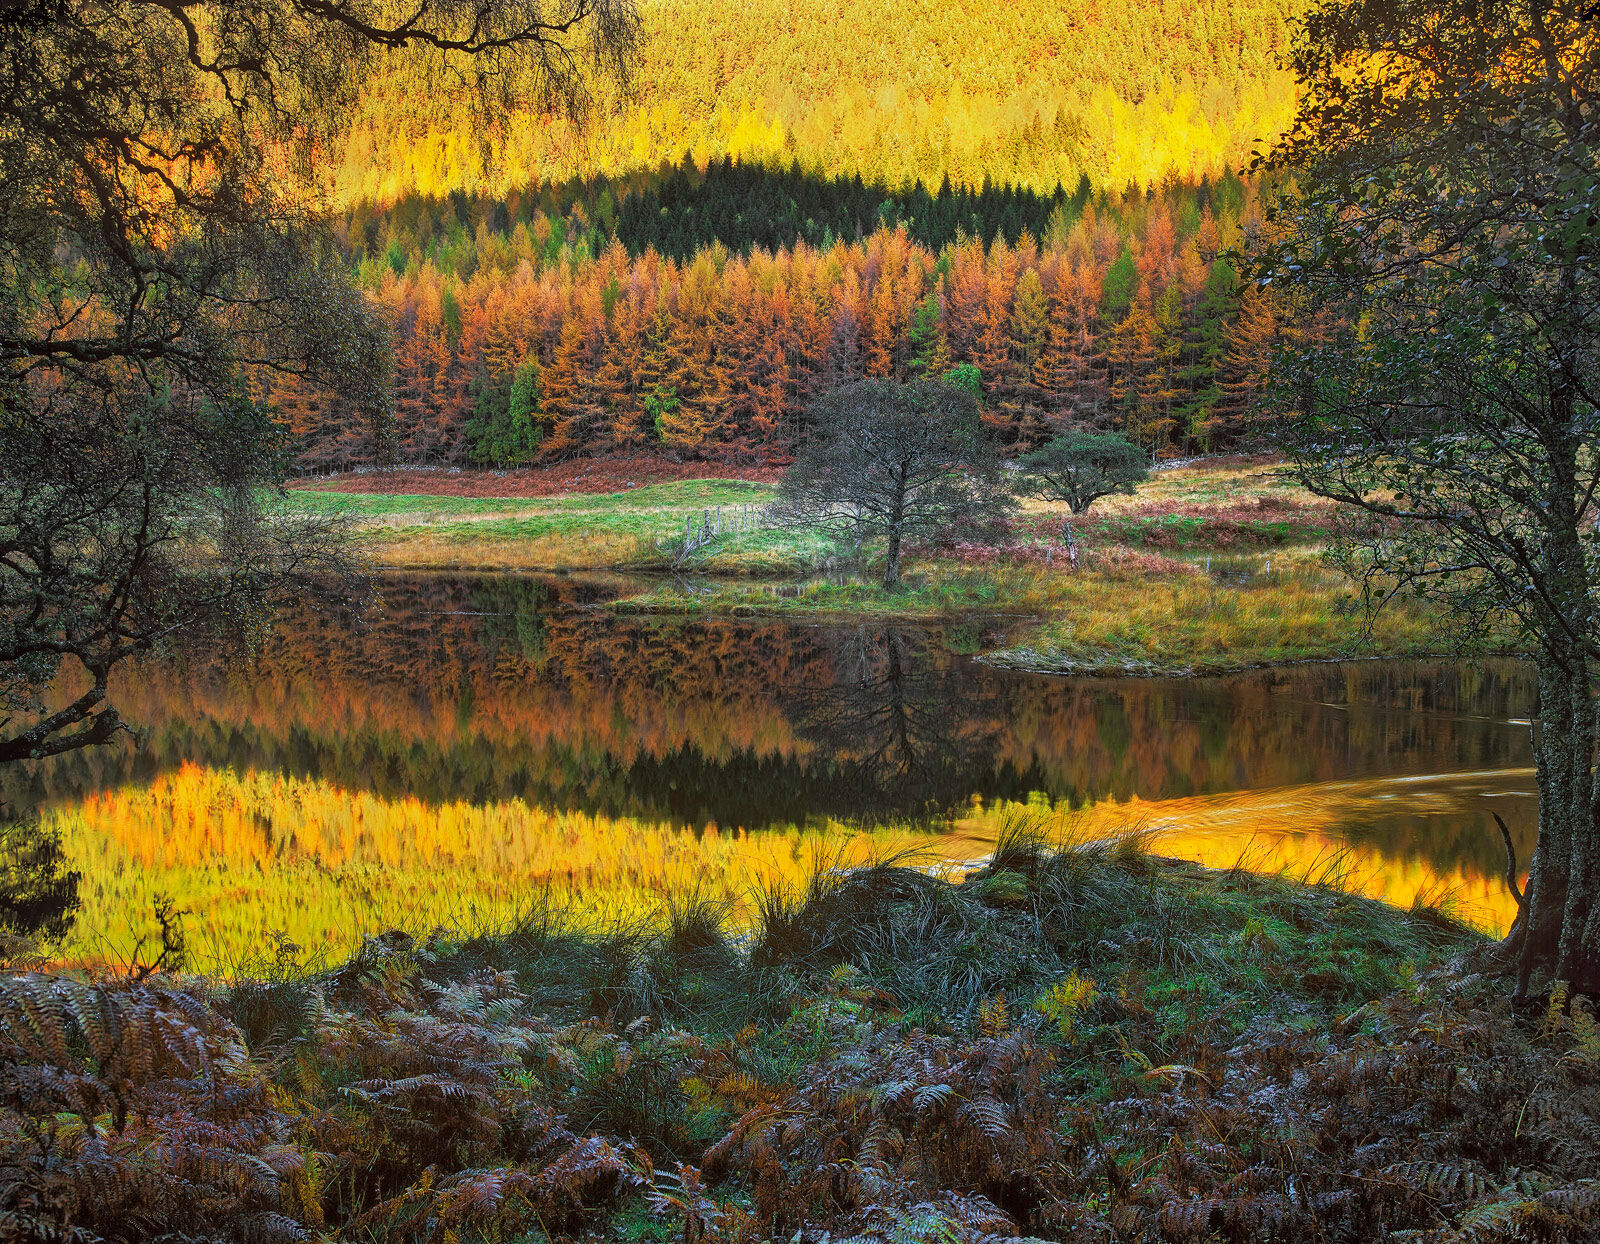 The foliage colour this autumn around the Glen Affric area was really quite stunning, none more so in fact than by the river...